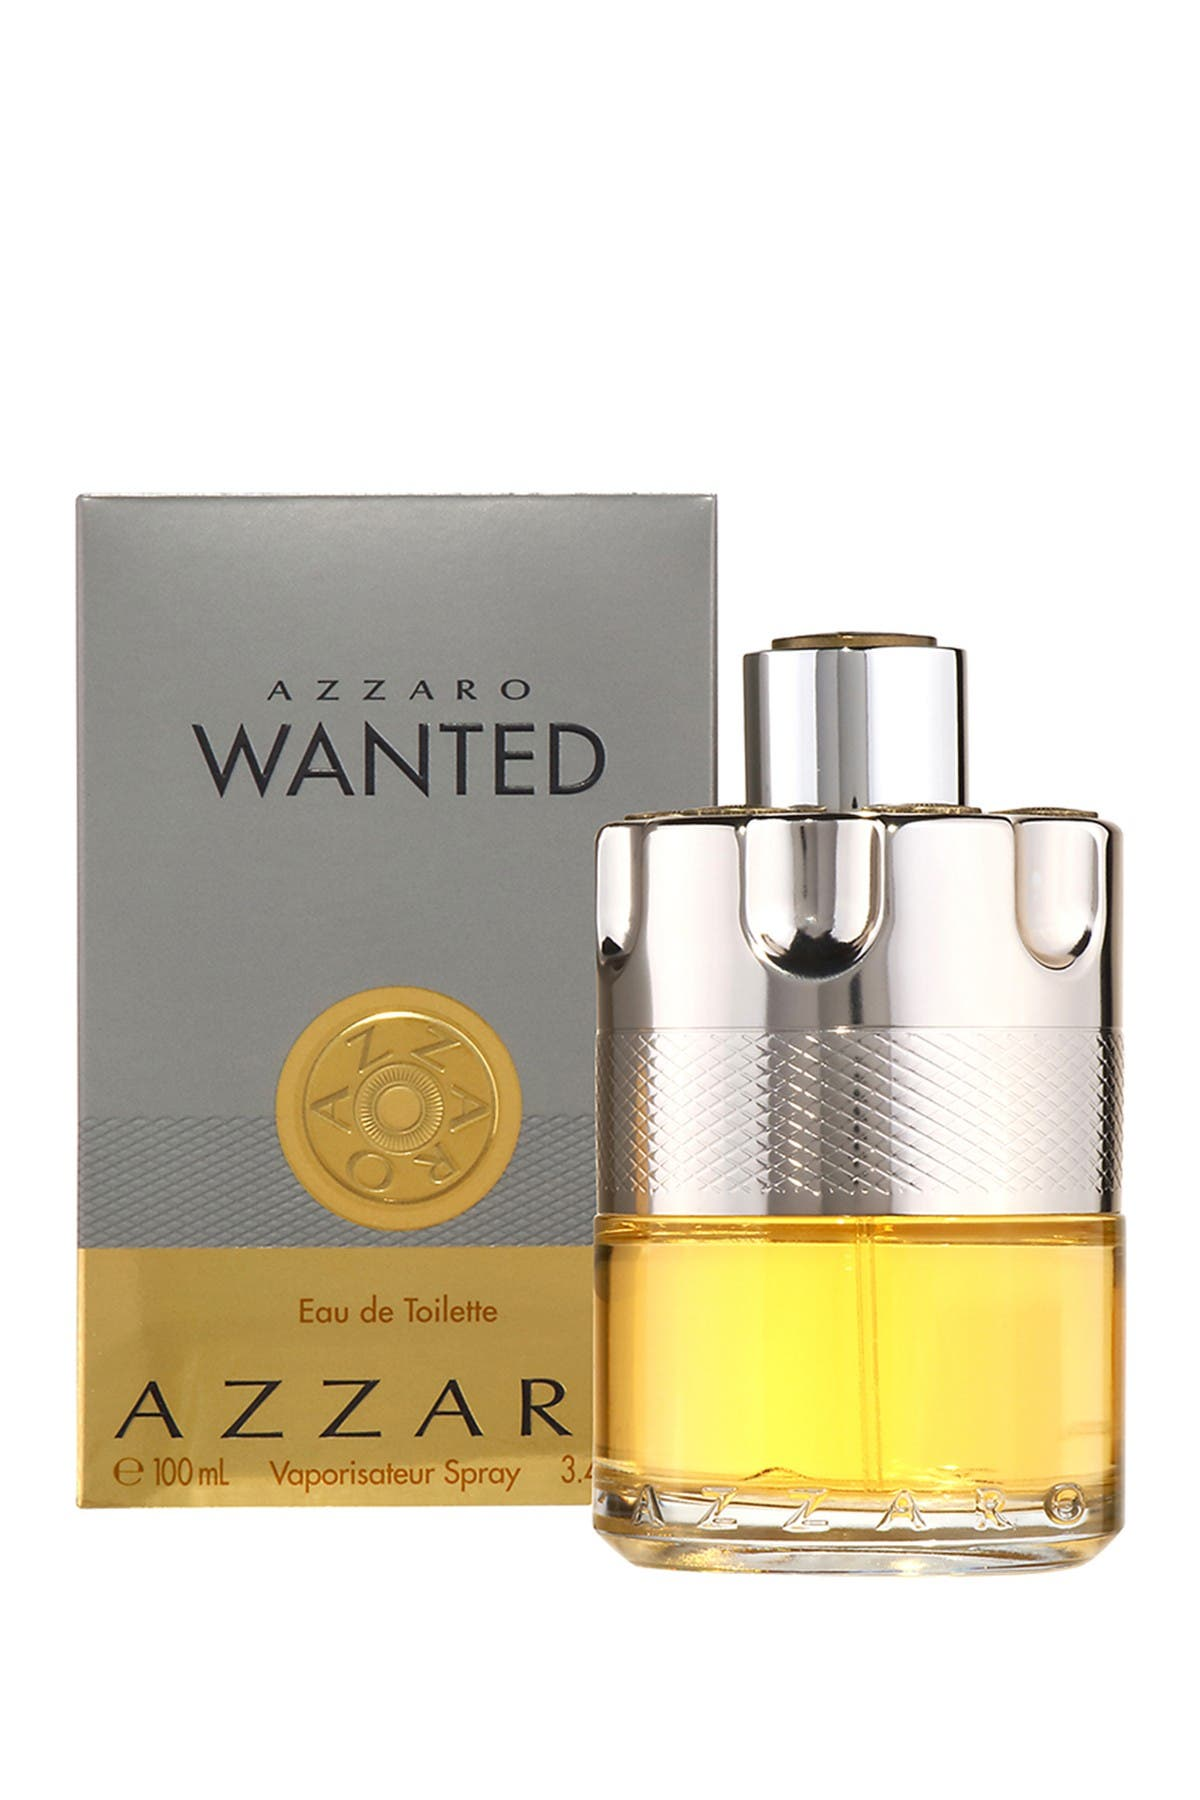 Image of Azzaro Wanted Eau de Toilette Spray - 3.4 fl. oz.